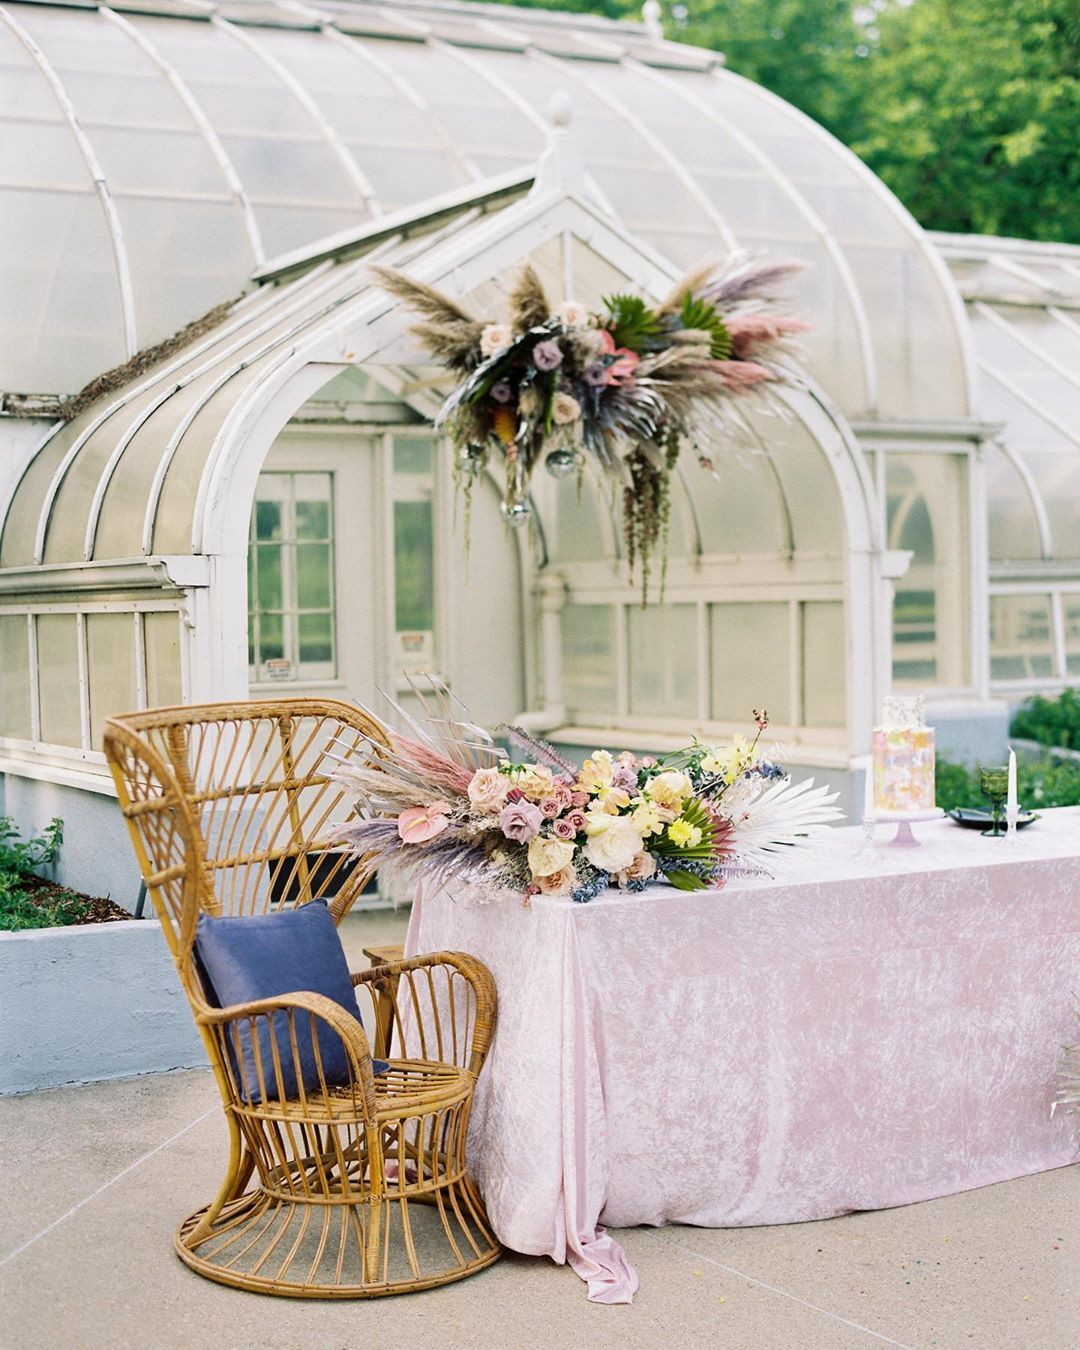 Alternative Wedding Rececption At A Greenhouse In Texas